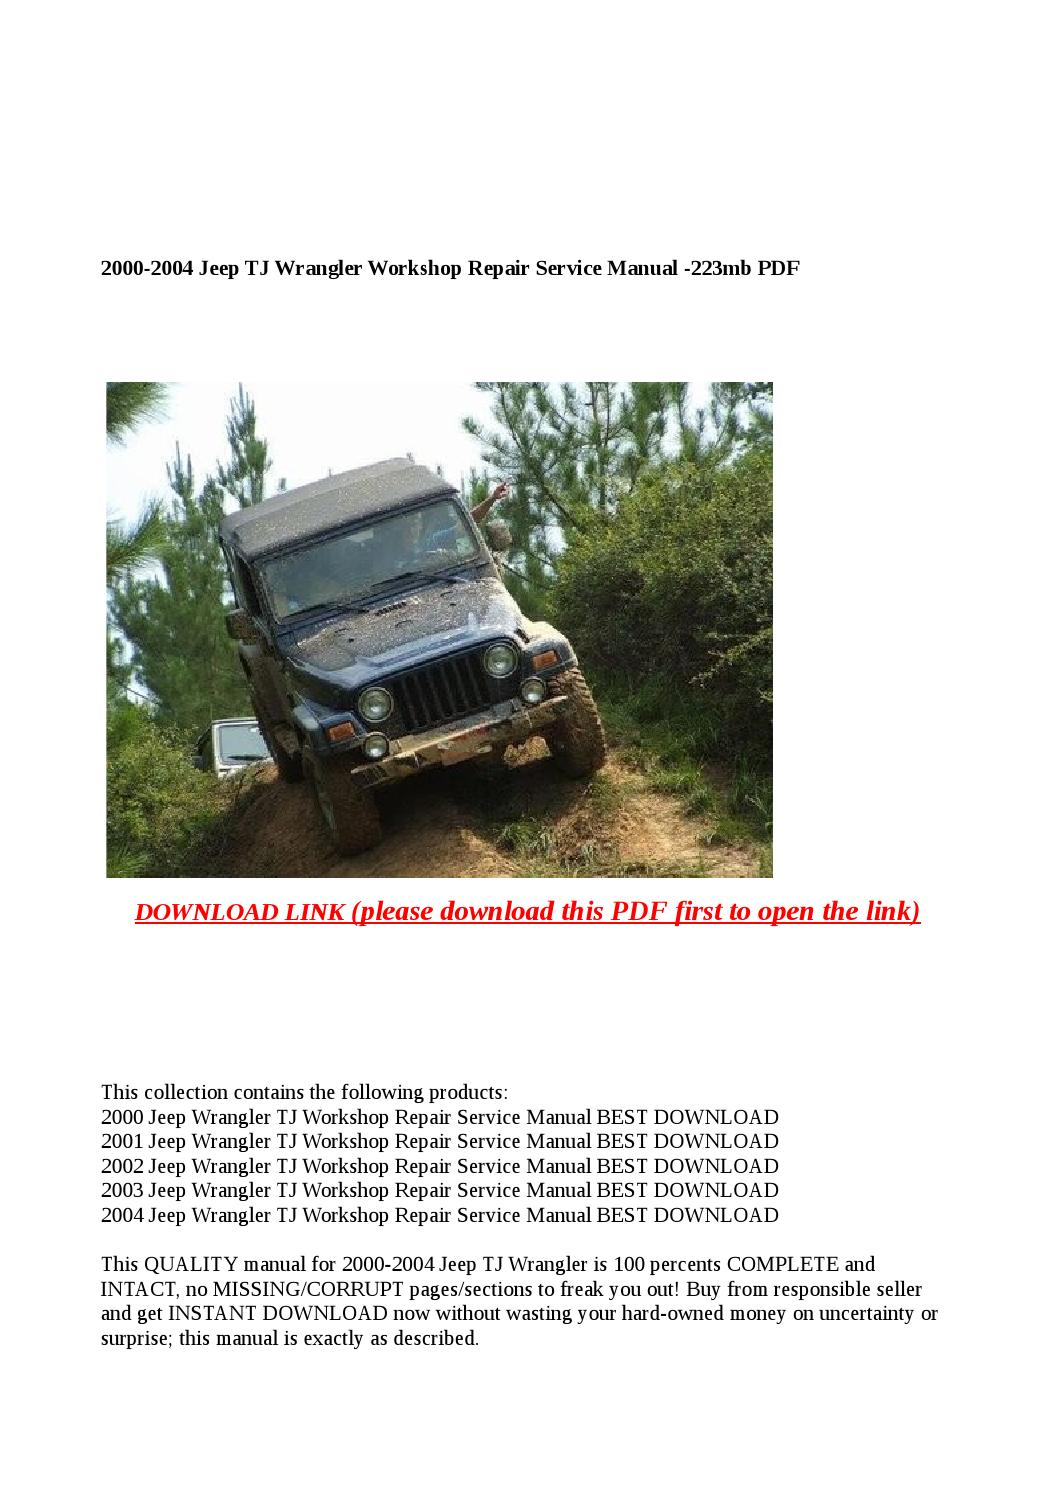 2000 2004 jeep tj wrangler workshop repair service manual 223mb pdf by  Cindy Tinh - issuu